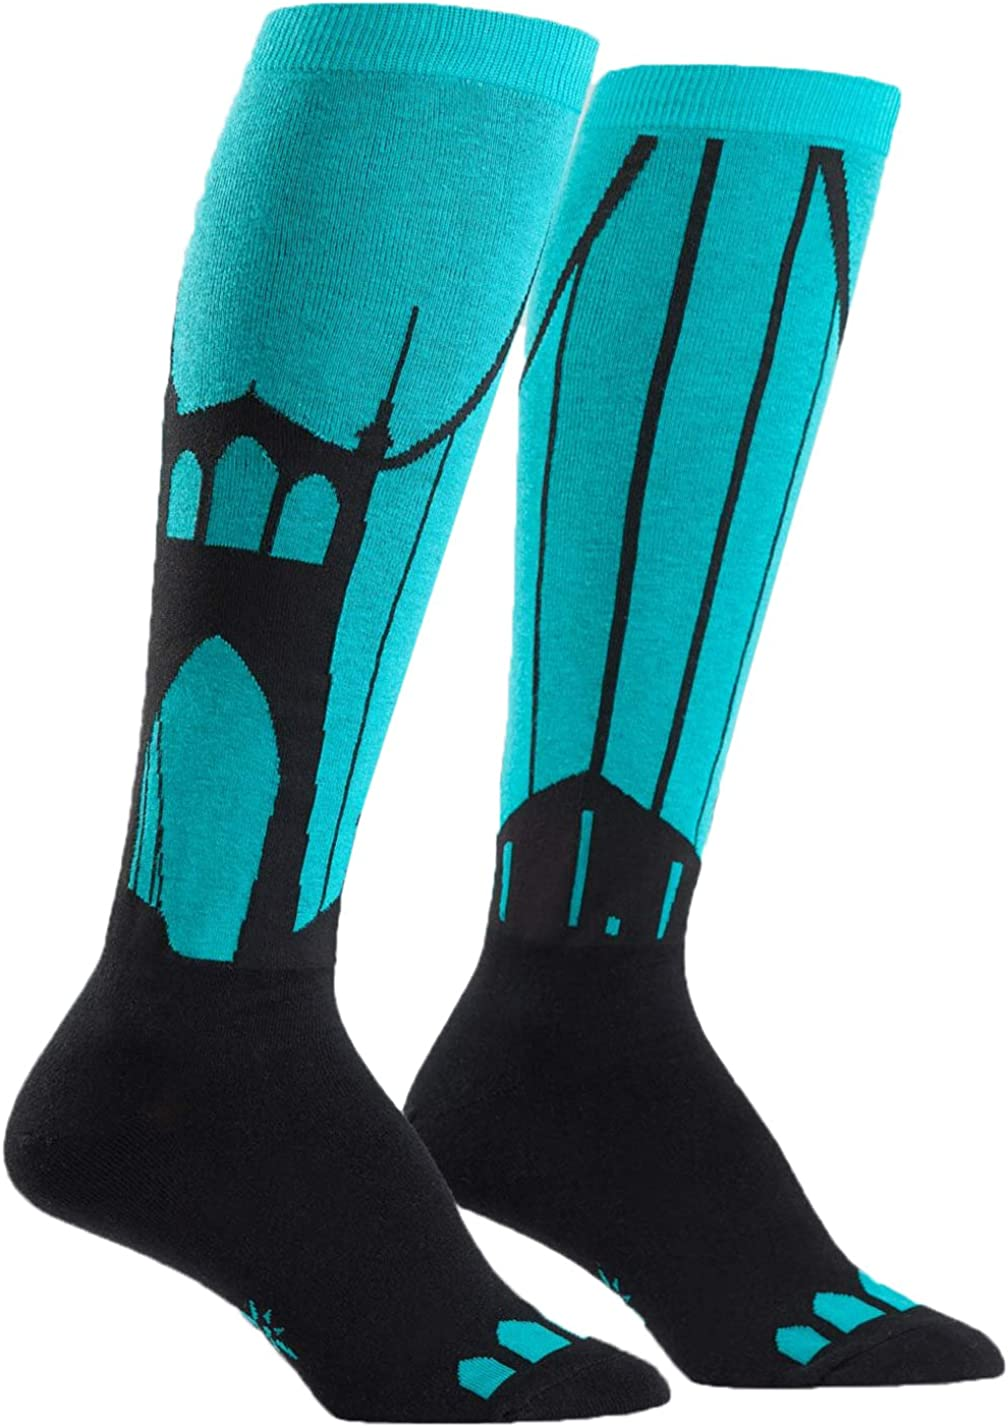 Sock It To Me Women/'s Funky Knee High Socks Just a Phase